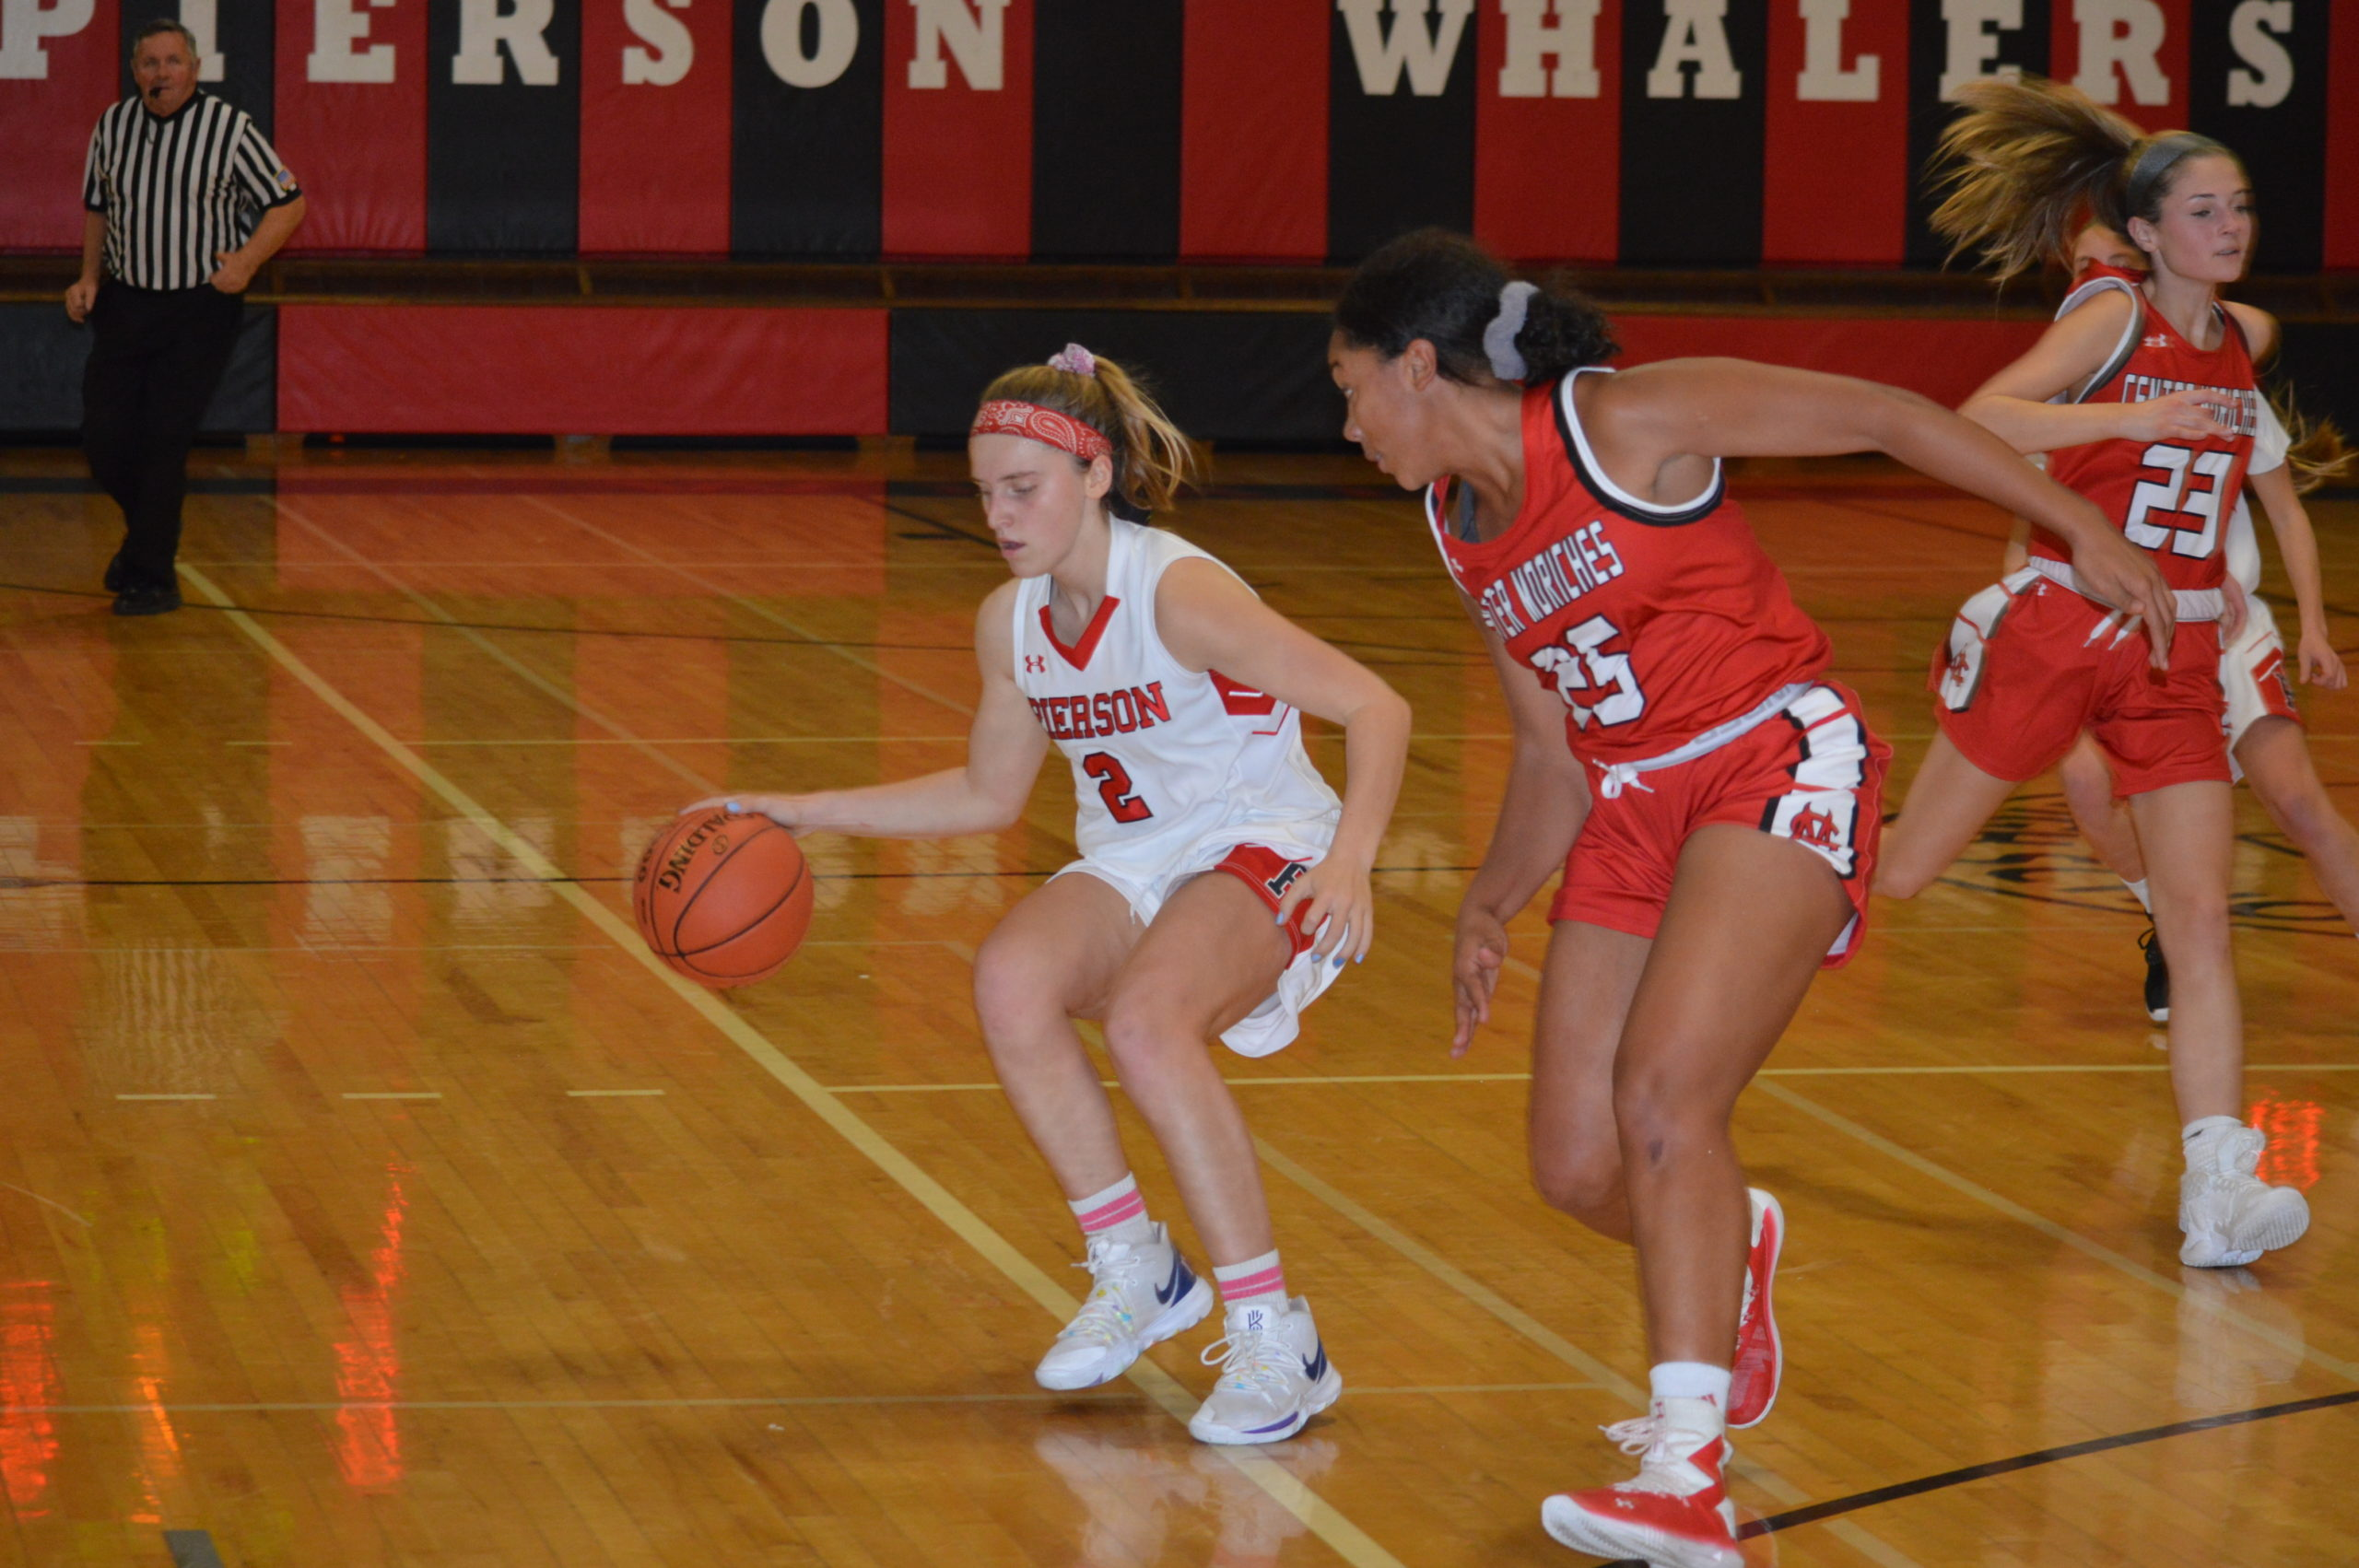 Pierson junior Grace Perello dribbling out of trouble against Center Moriches.